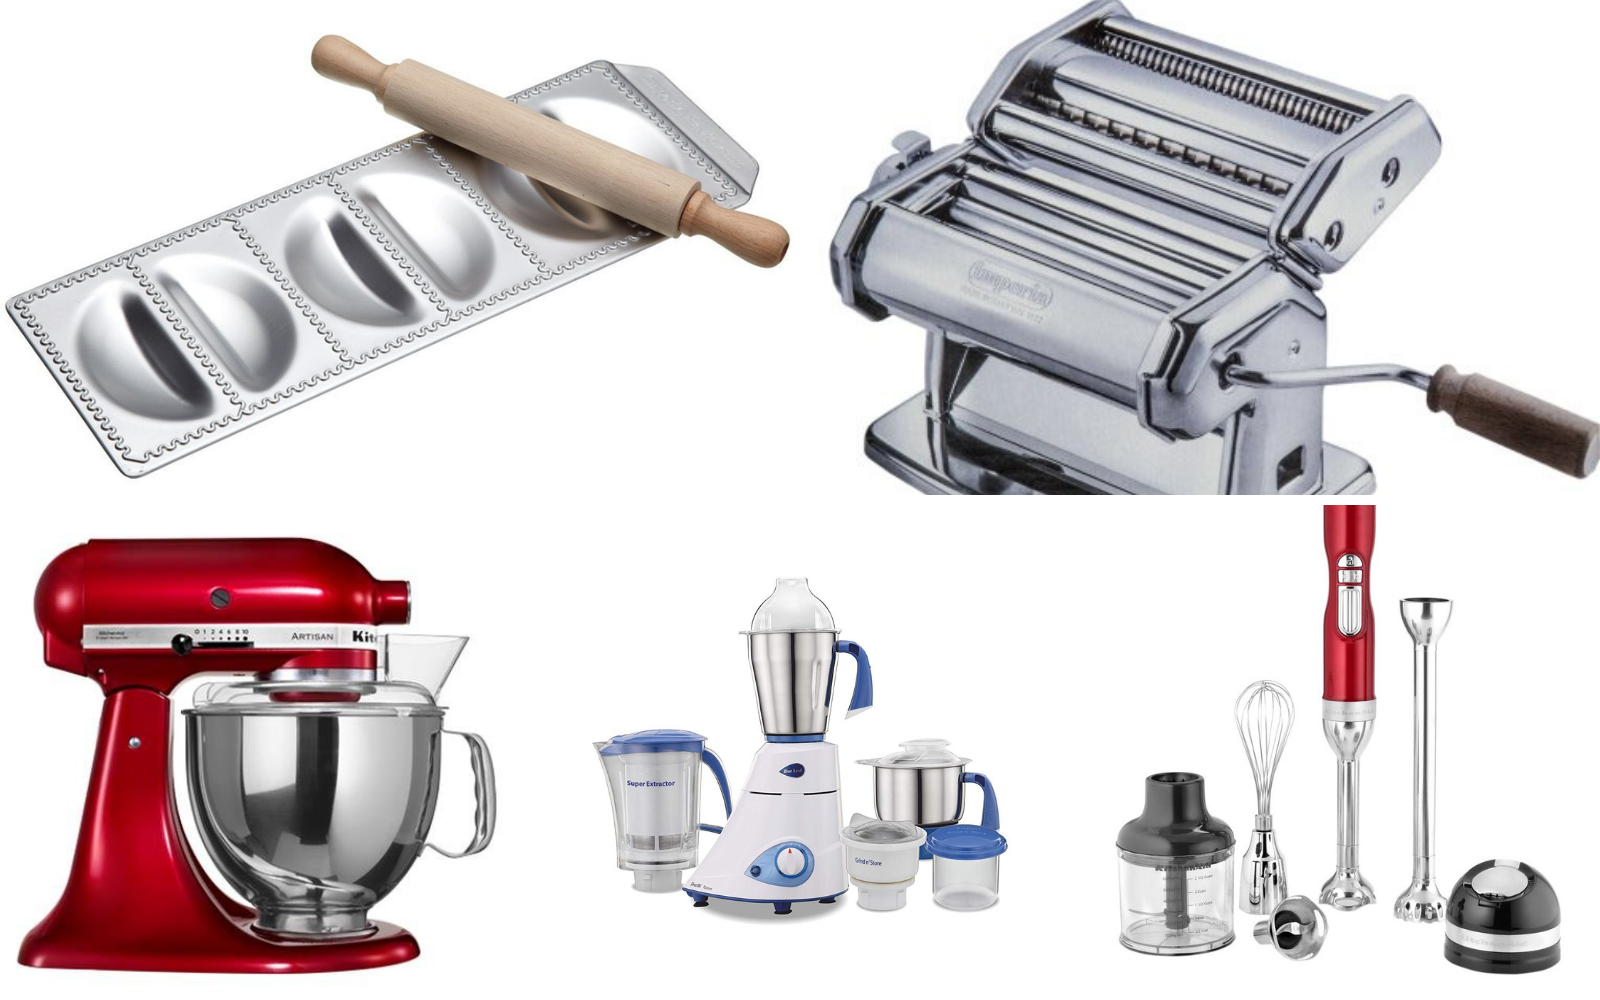 10 Basic Kitchen Appliances Every Home Needs To Have By